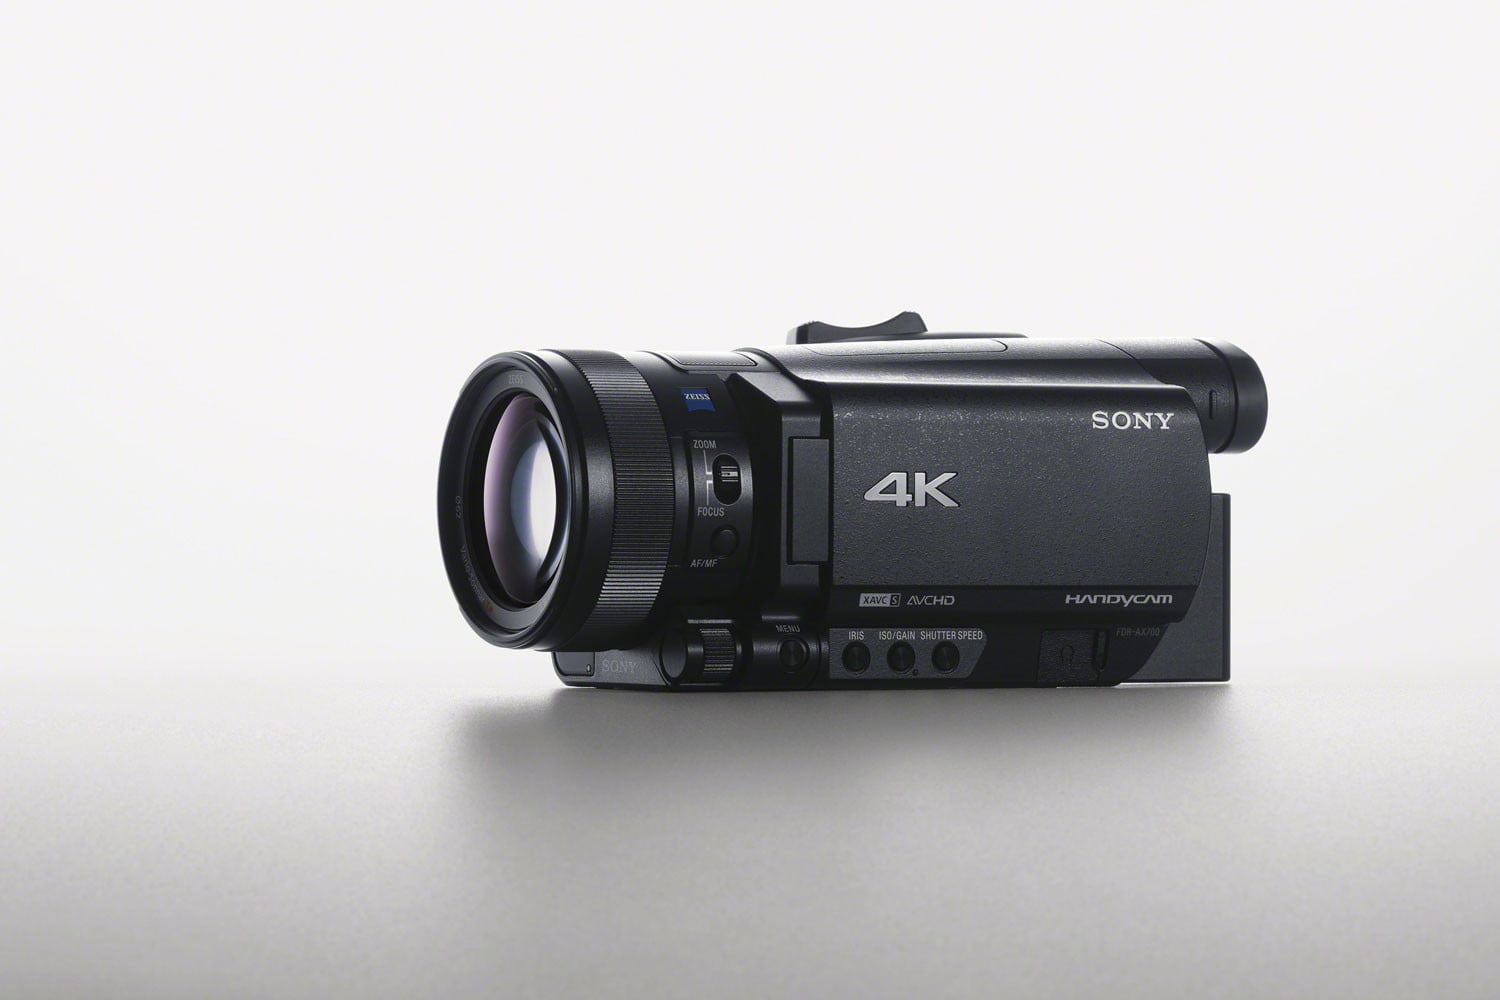 Sony Camcorder FDR-AX700